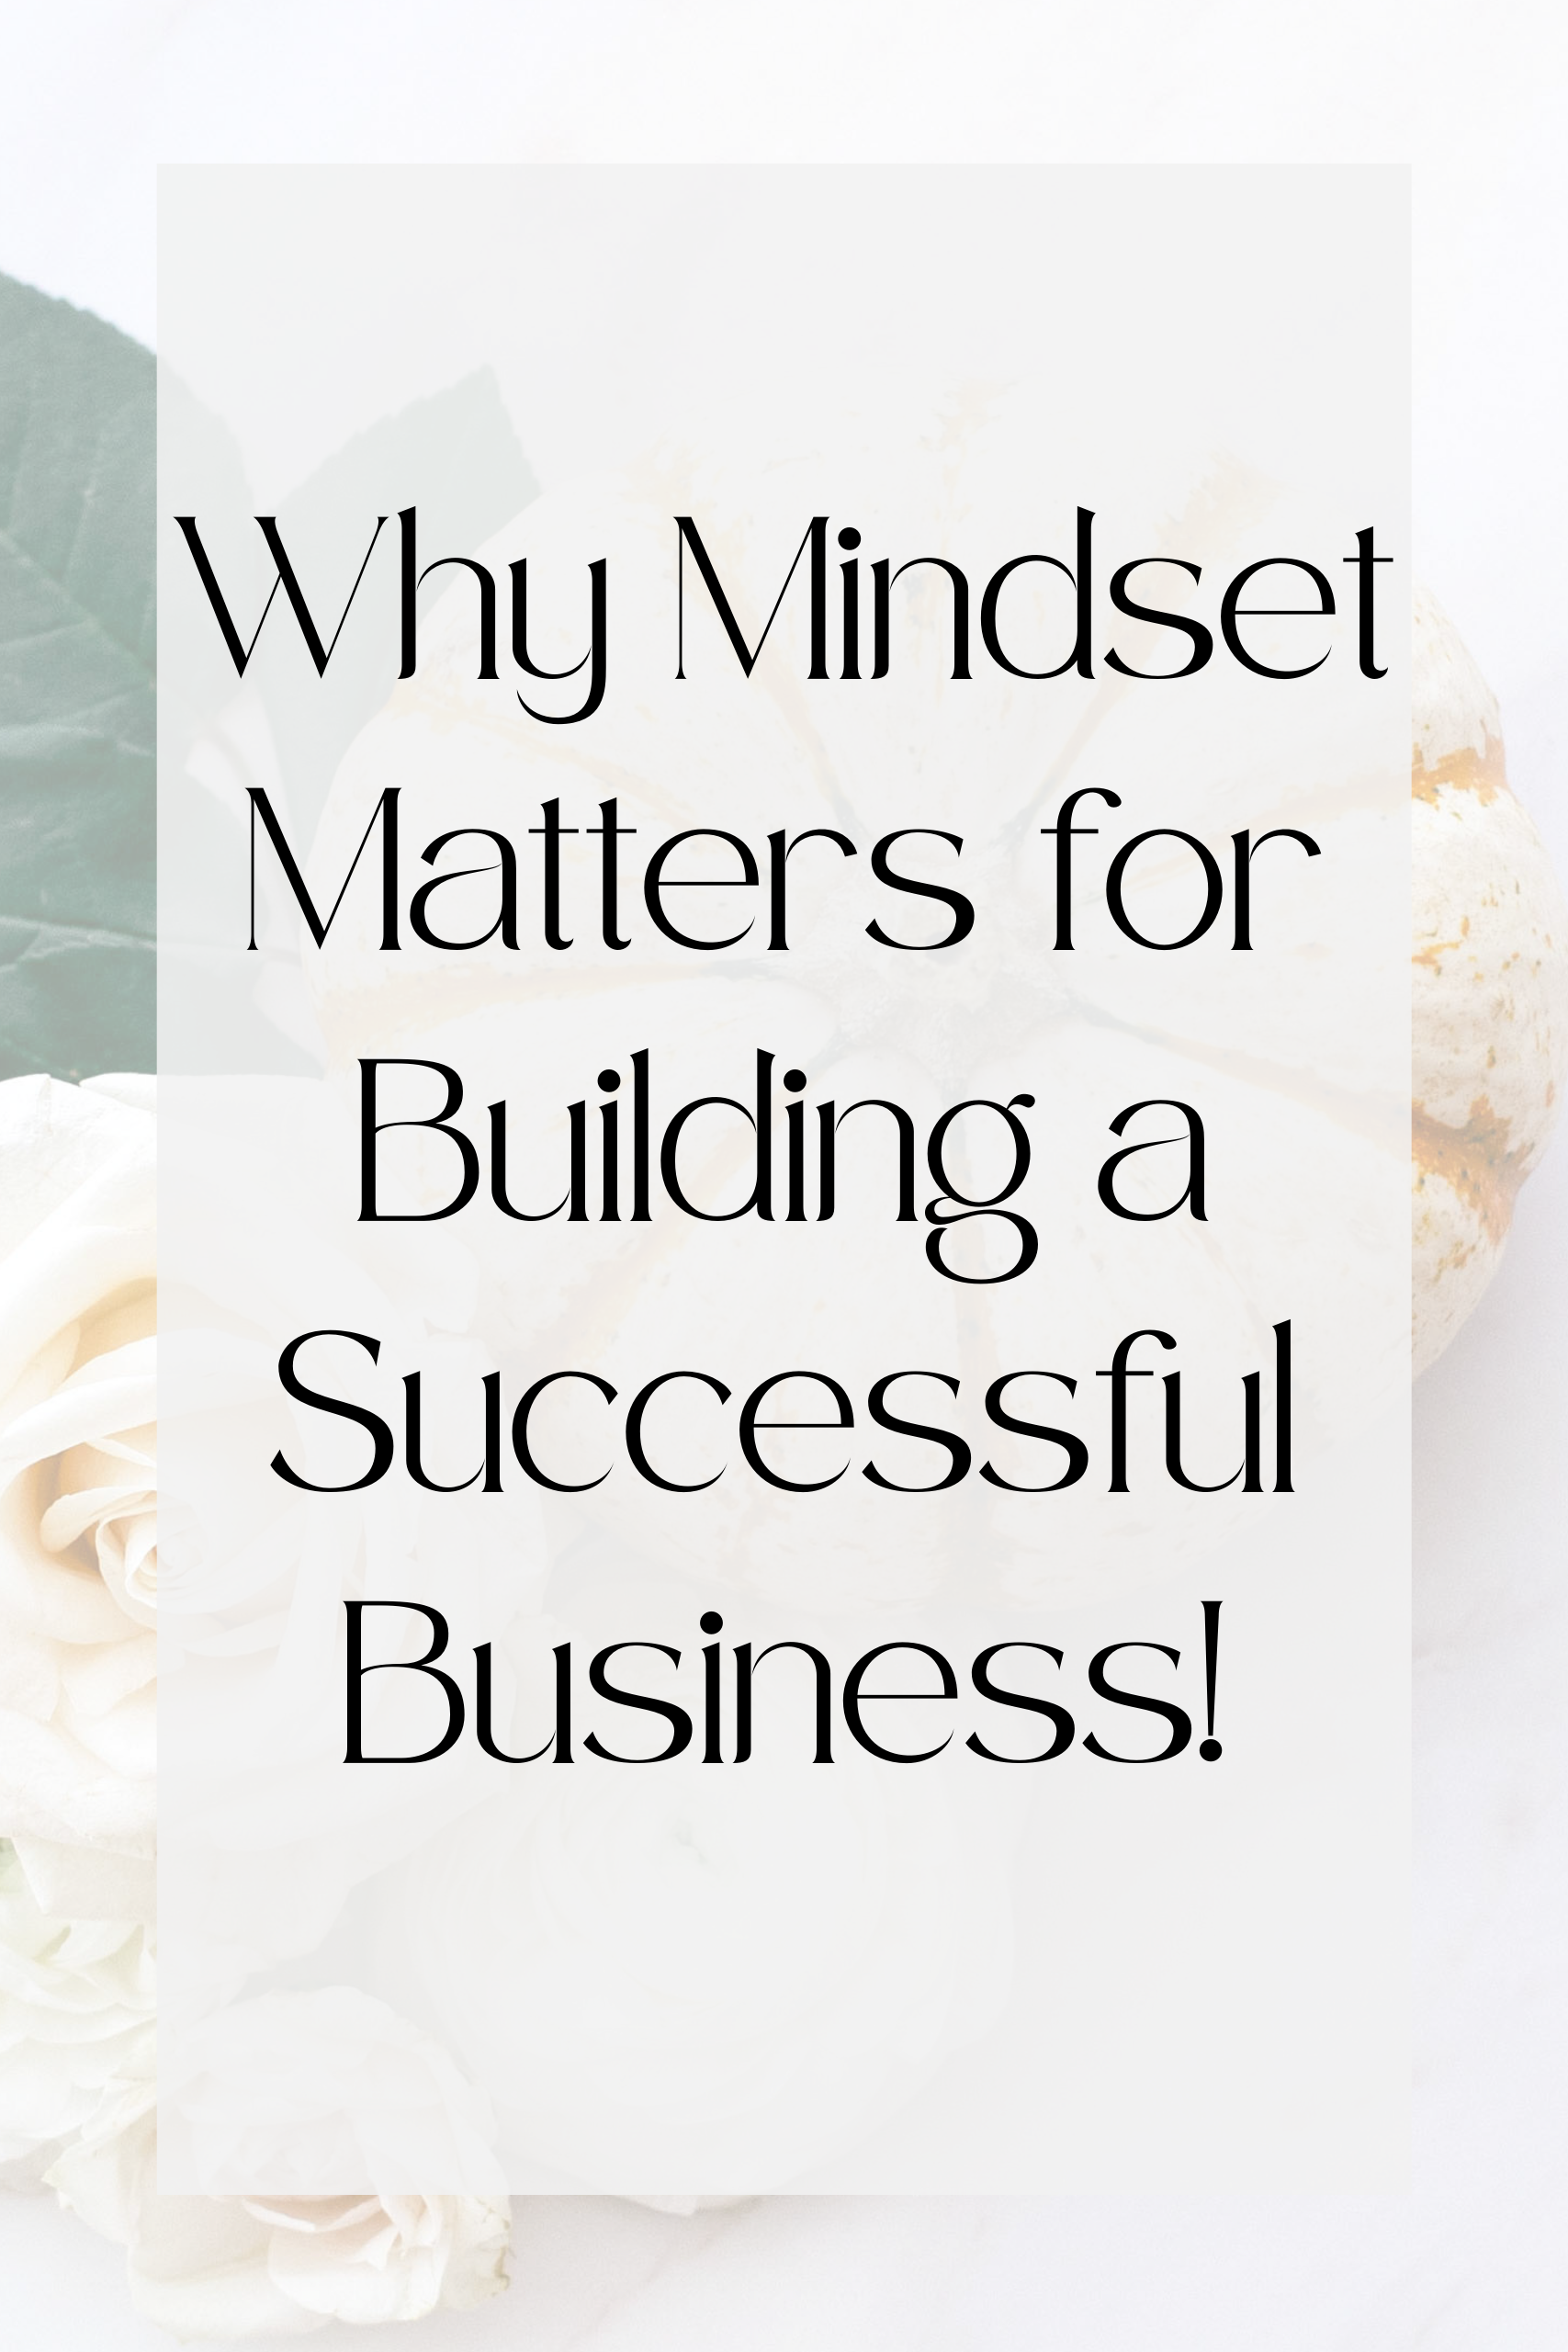 Why Mindset Matters for building a Successful Business